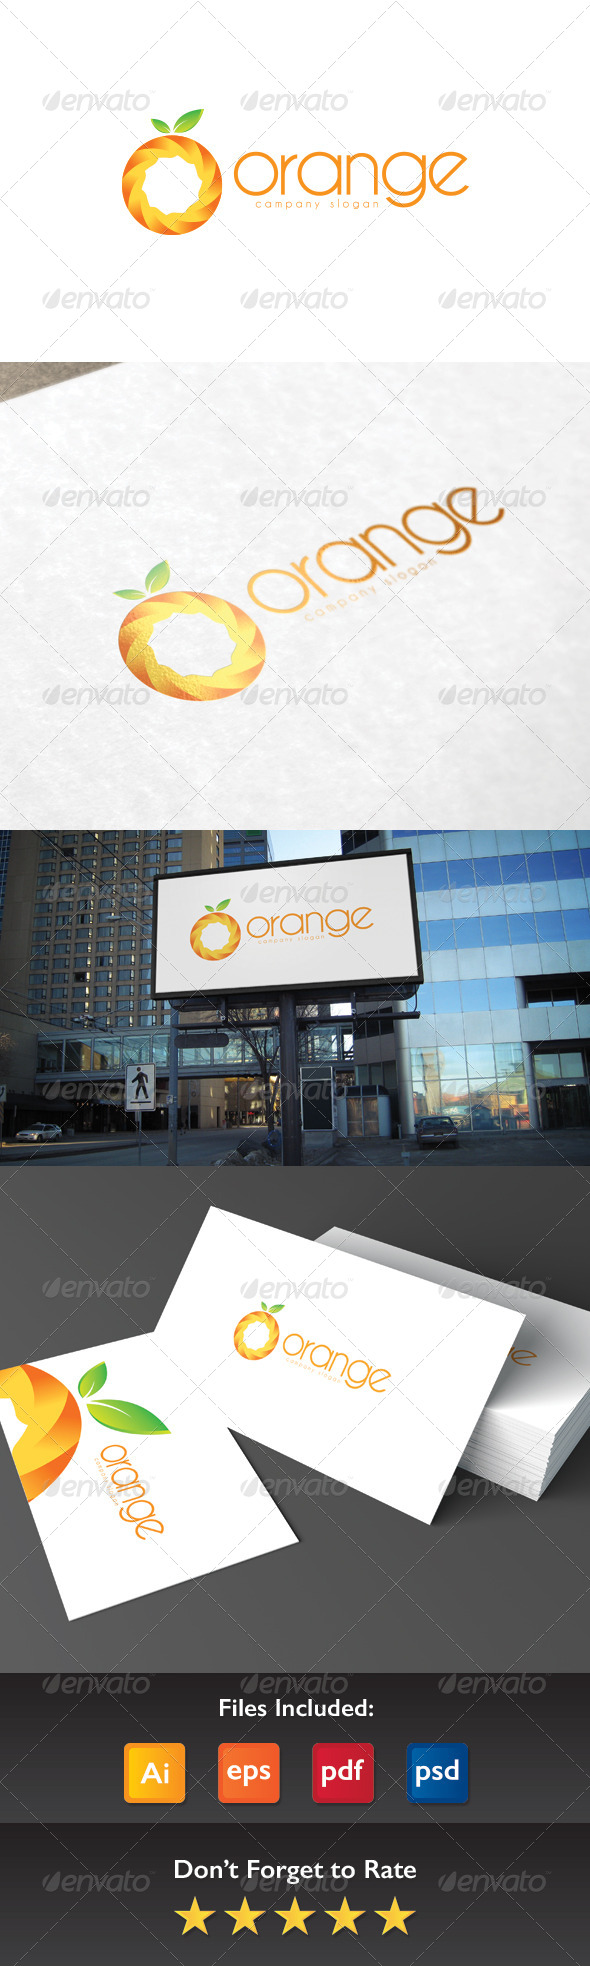 GraphicRiver Orange Logo 8417202